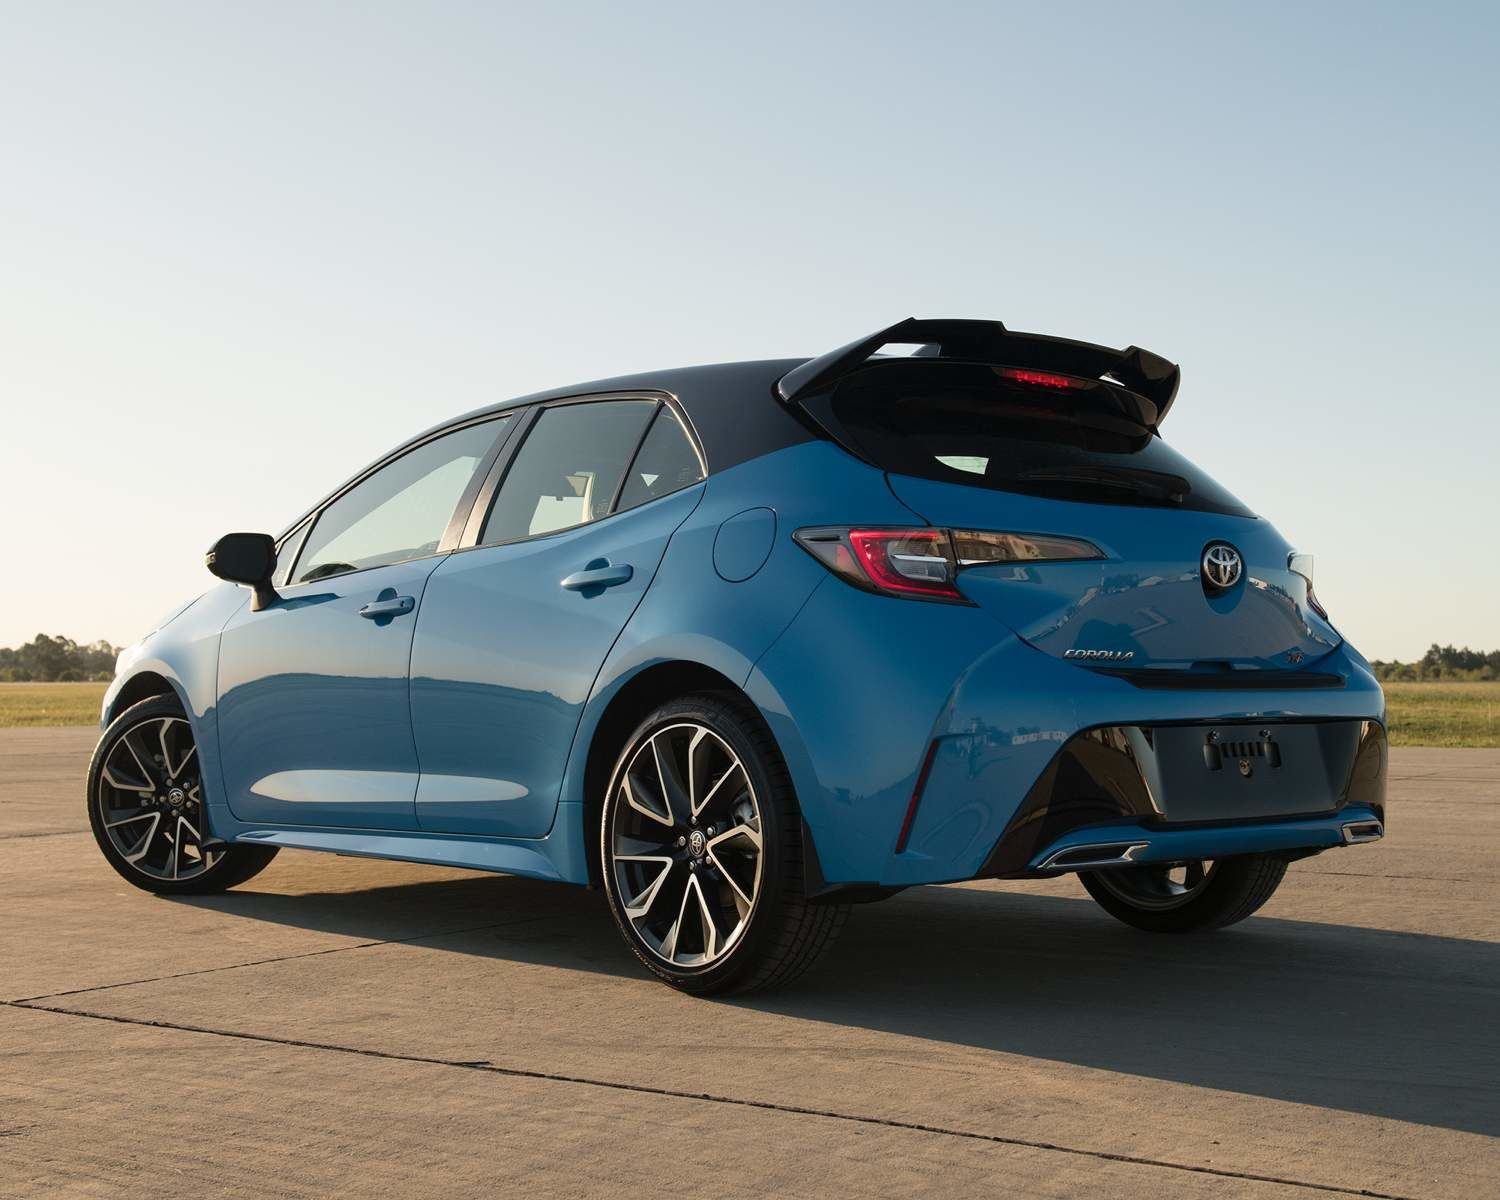 Corolla Hatchback XSE shown in Blue Flame with Black Roof